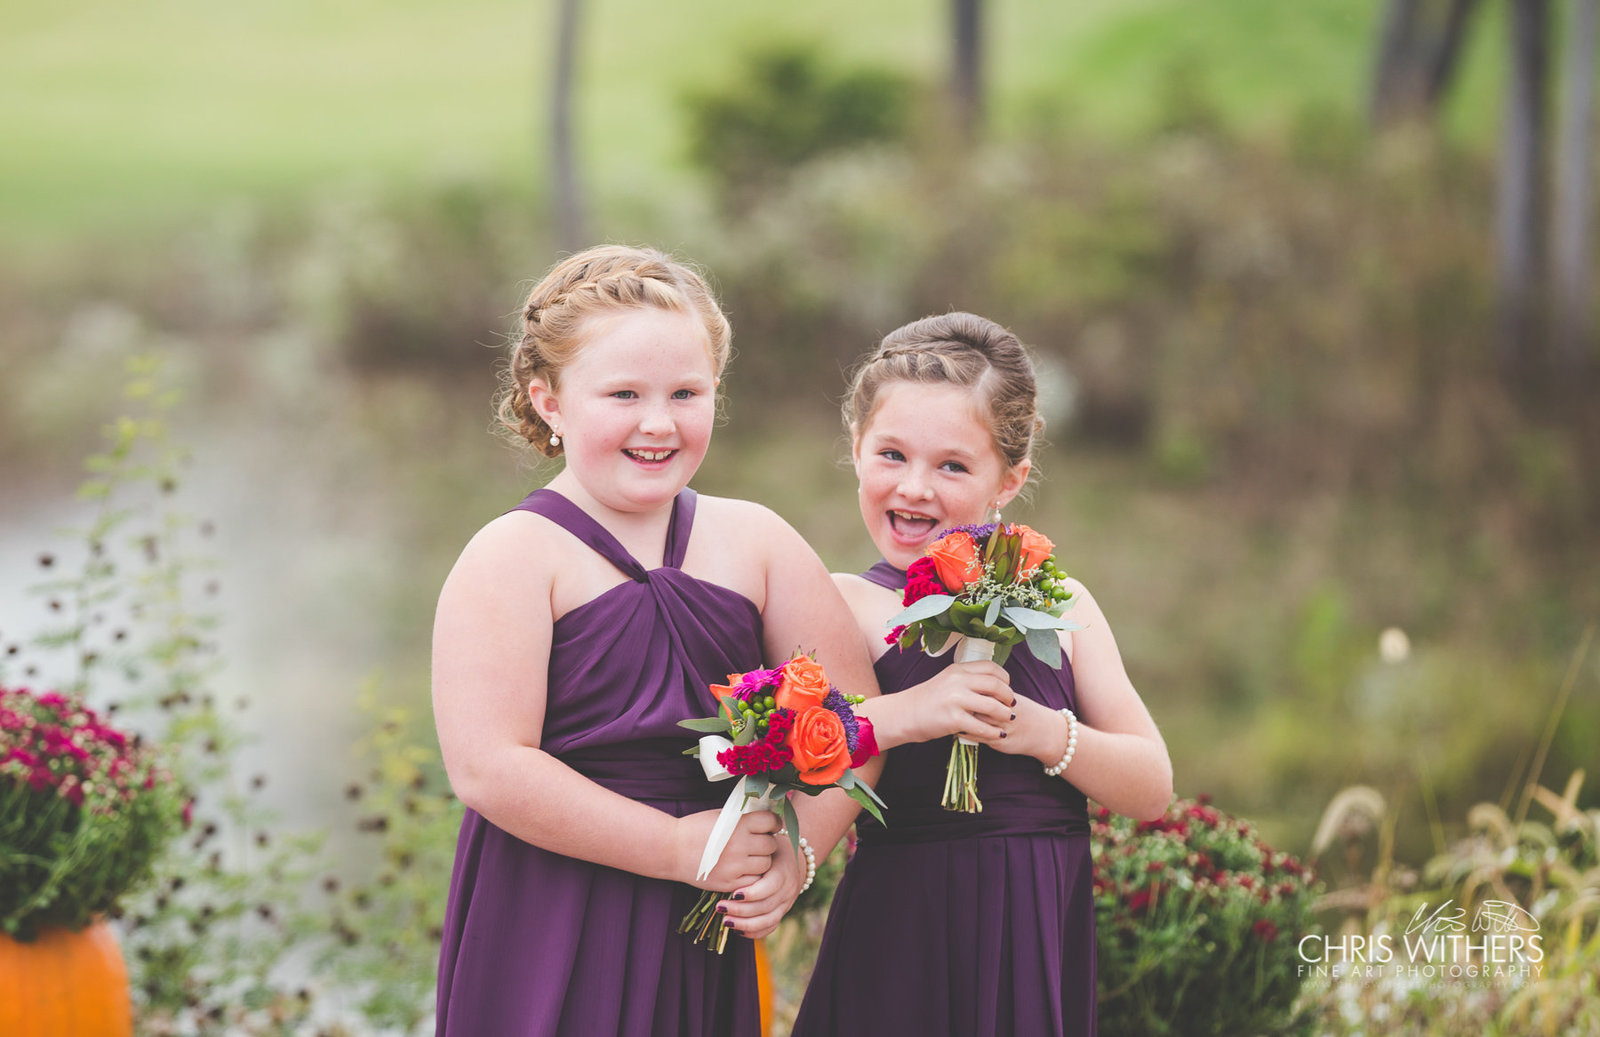 Springfield Illinois Wedding Photographer - Chris Withers Photography (59 of 159)